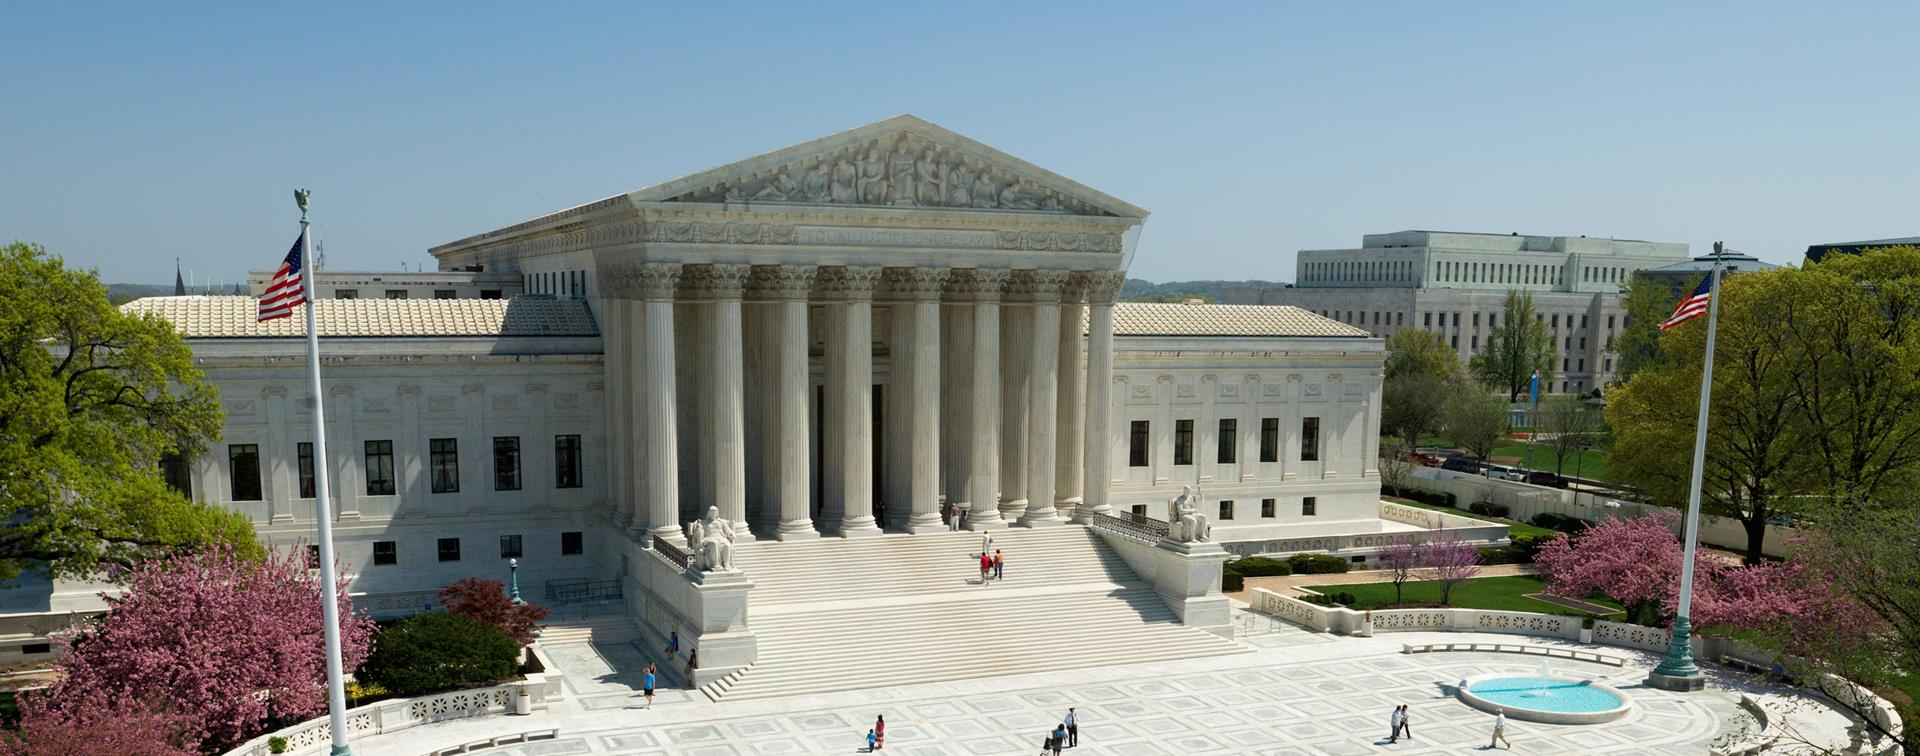 A picture of the US Supreme Court